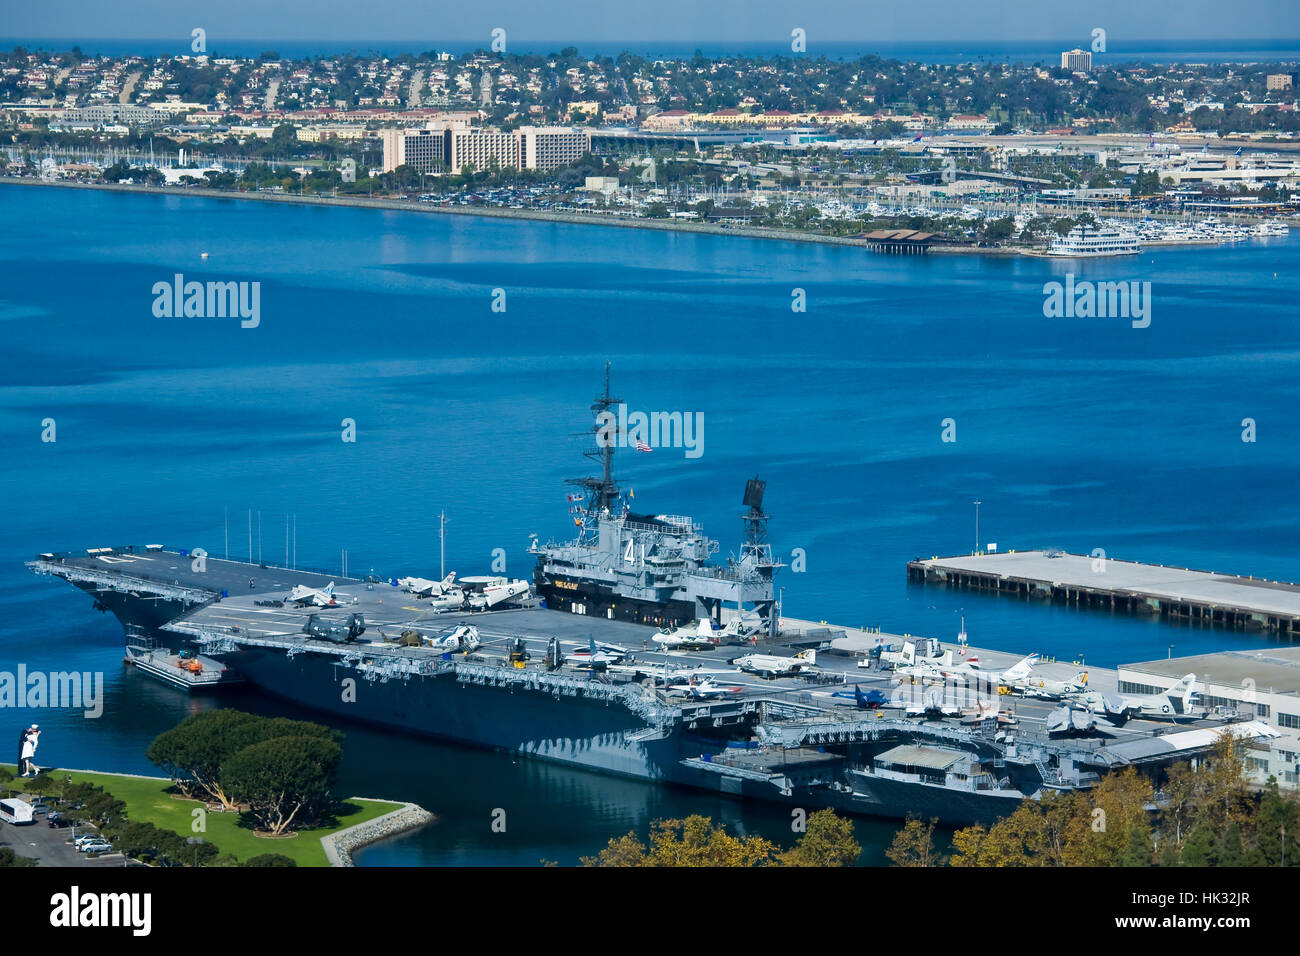 The US Navy aircraft carrier Midway museum on the downtown San Diego, CA waterfront. Stock Photo